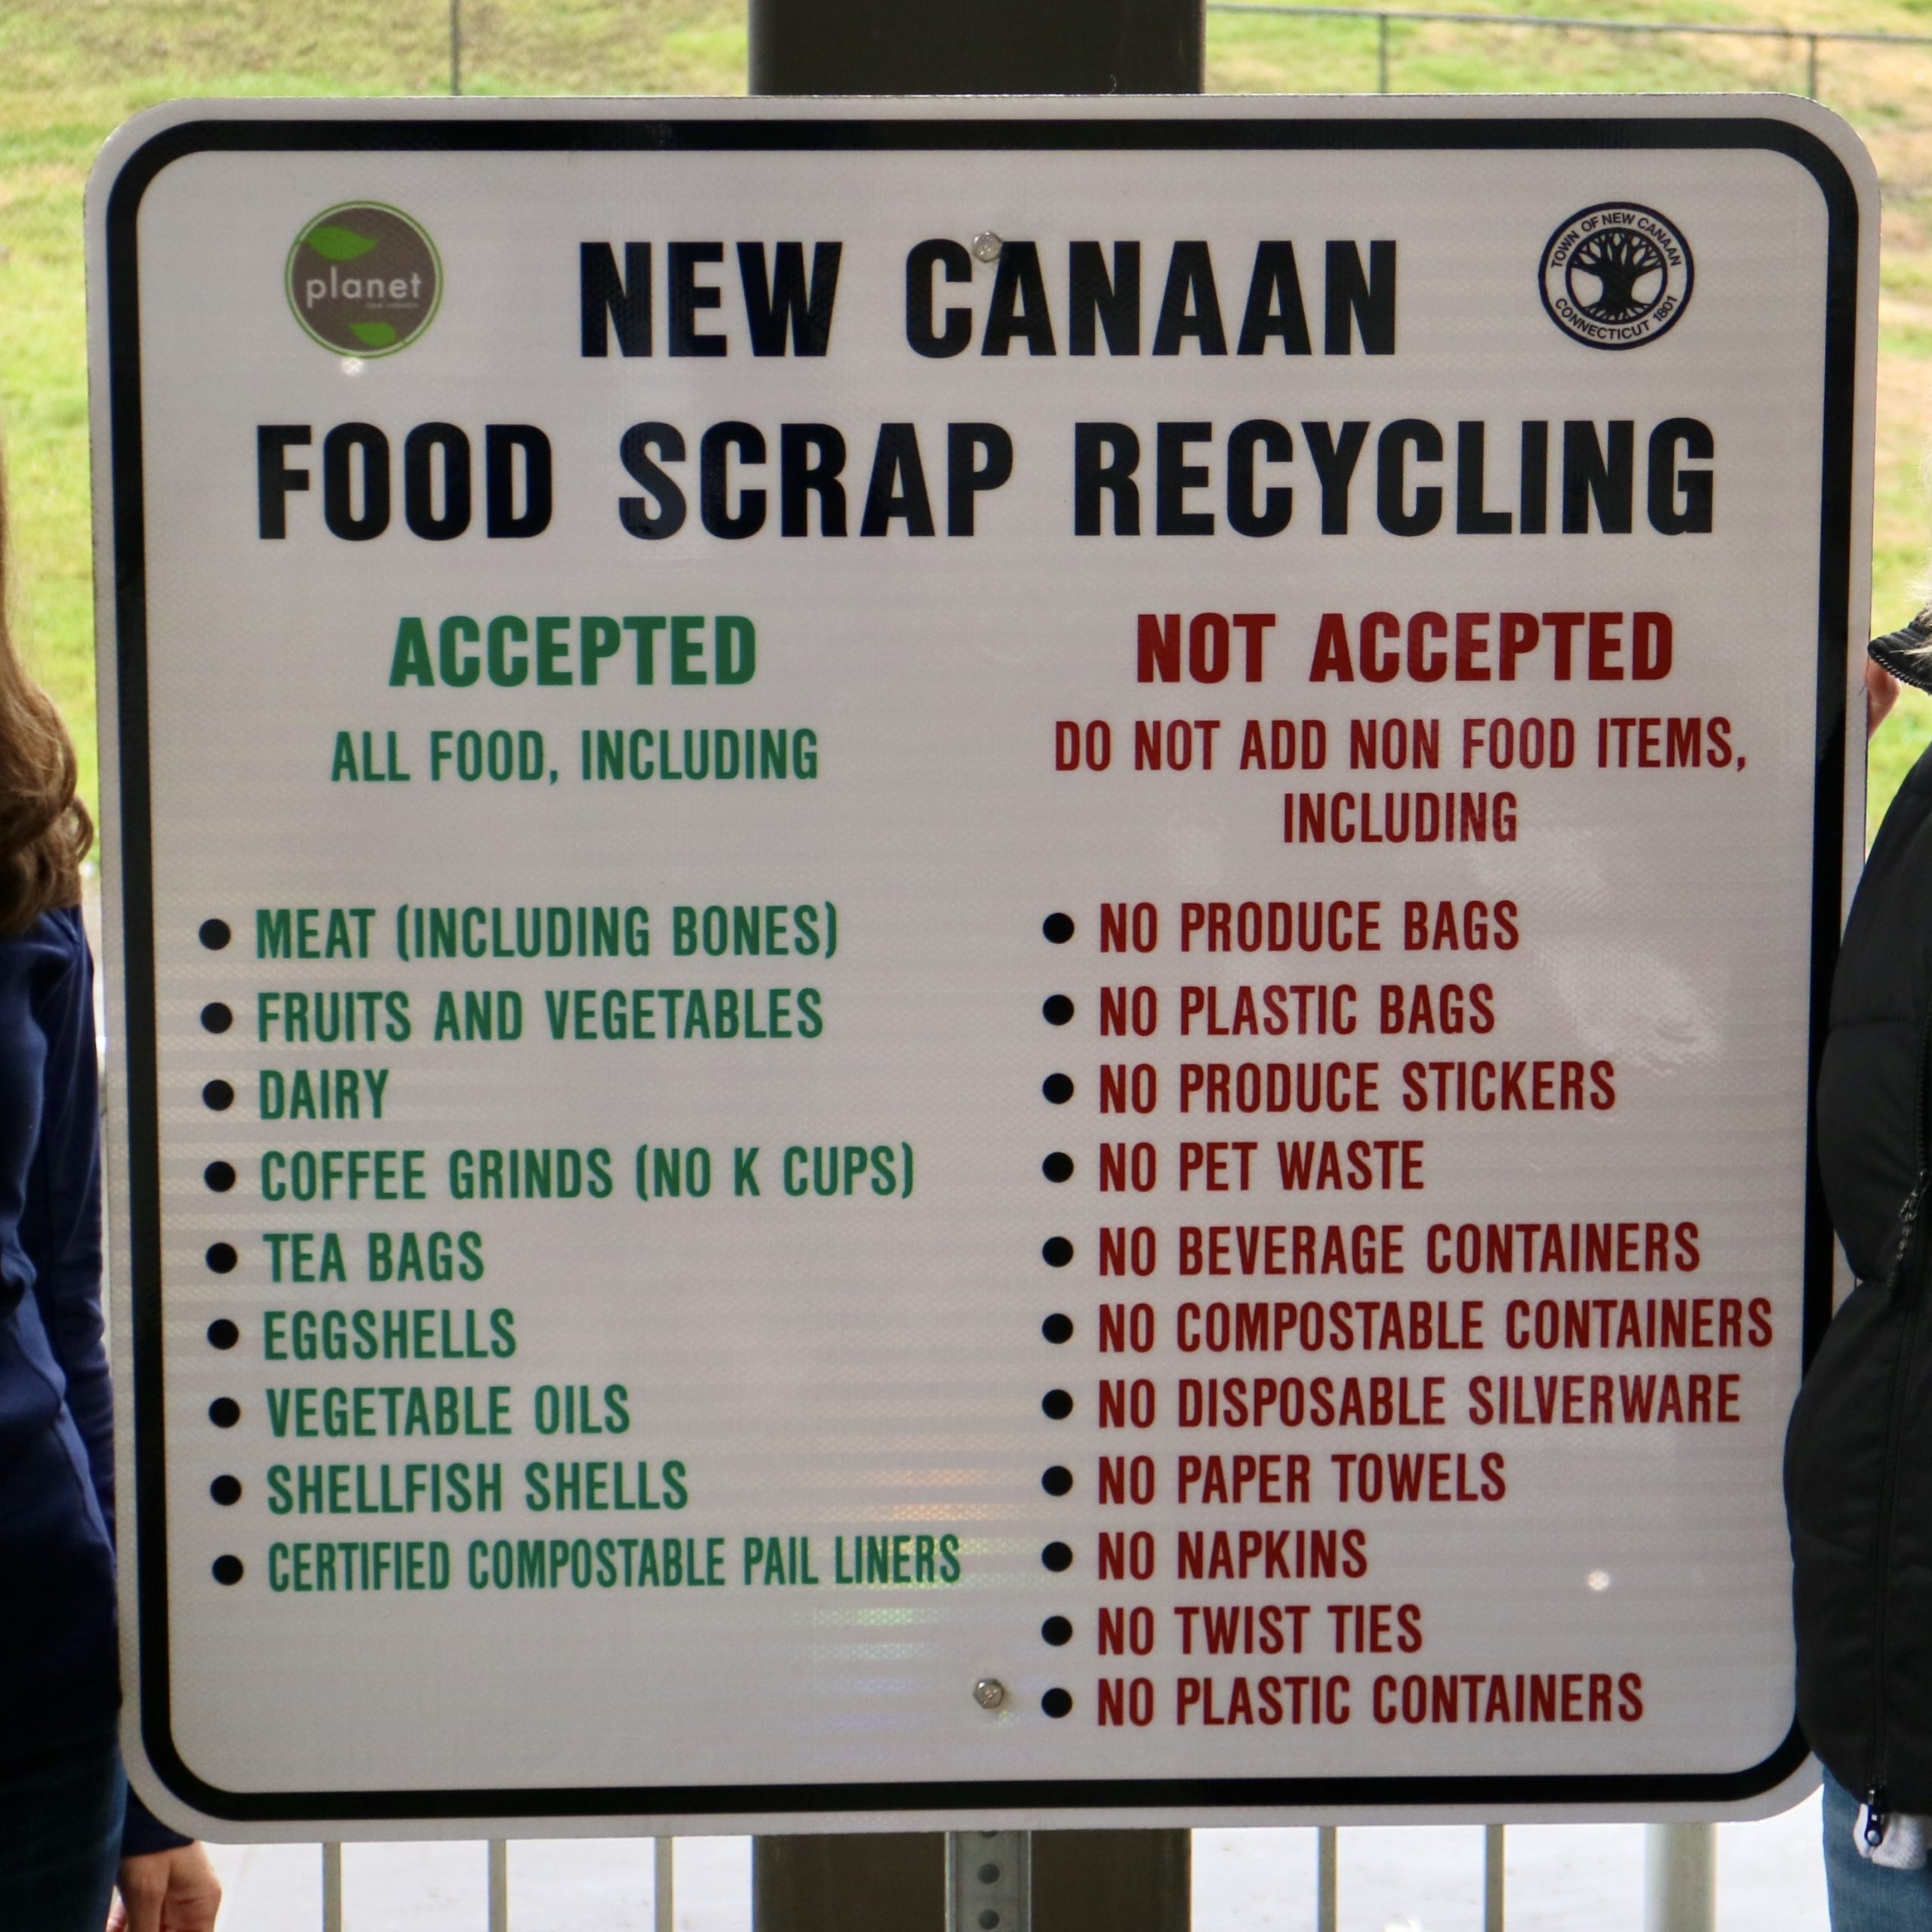 food scrap recycling allyson mahoney katie owsley scaled q1tcOV.tmp